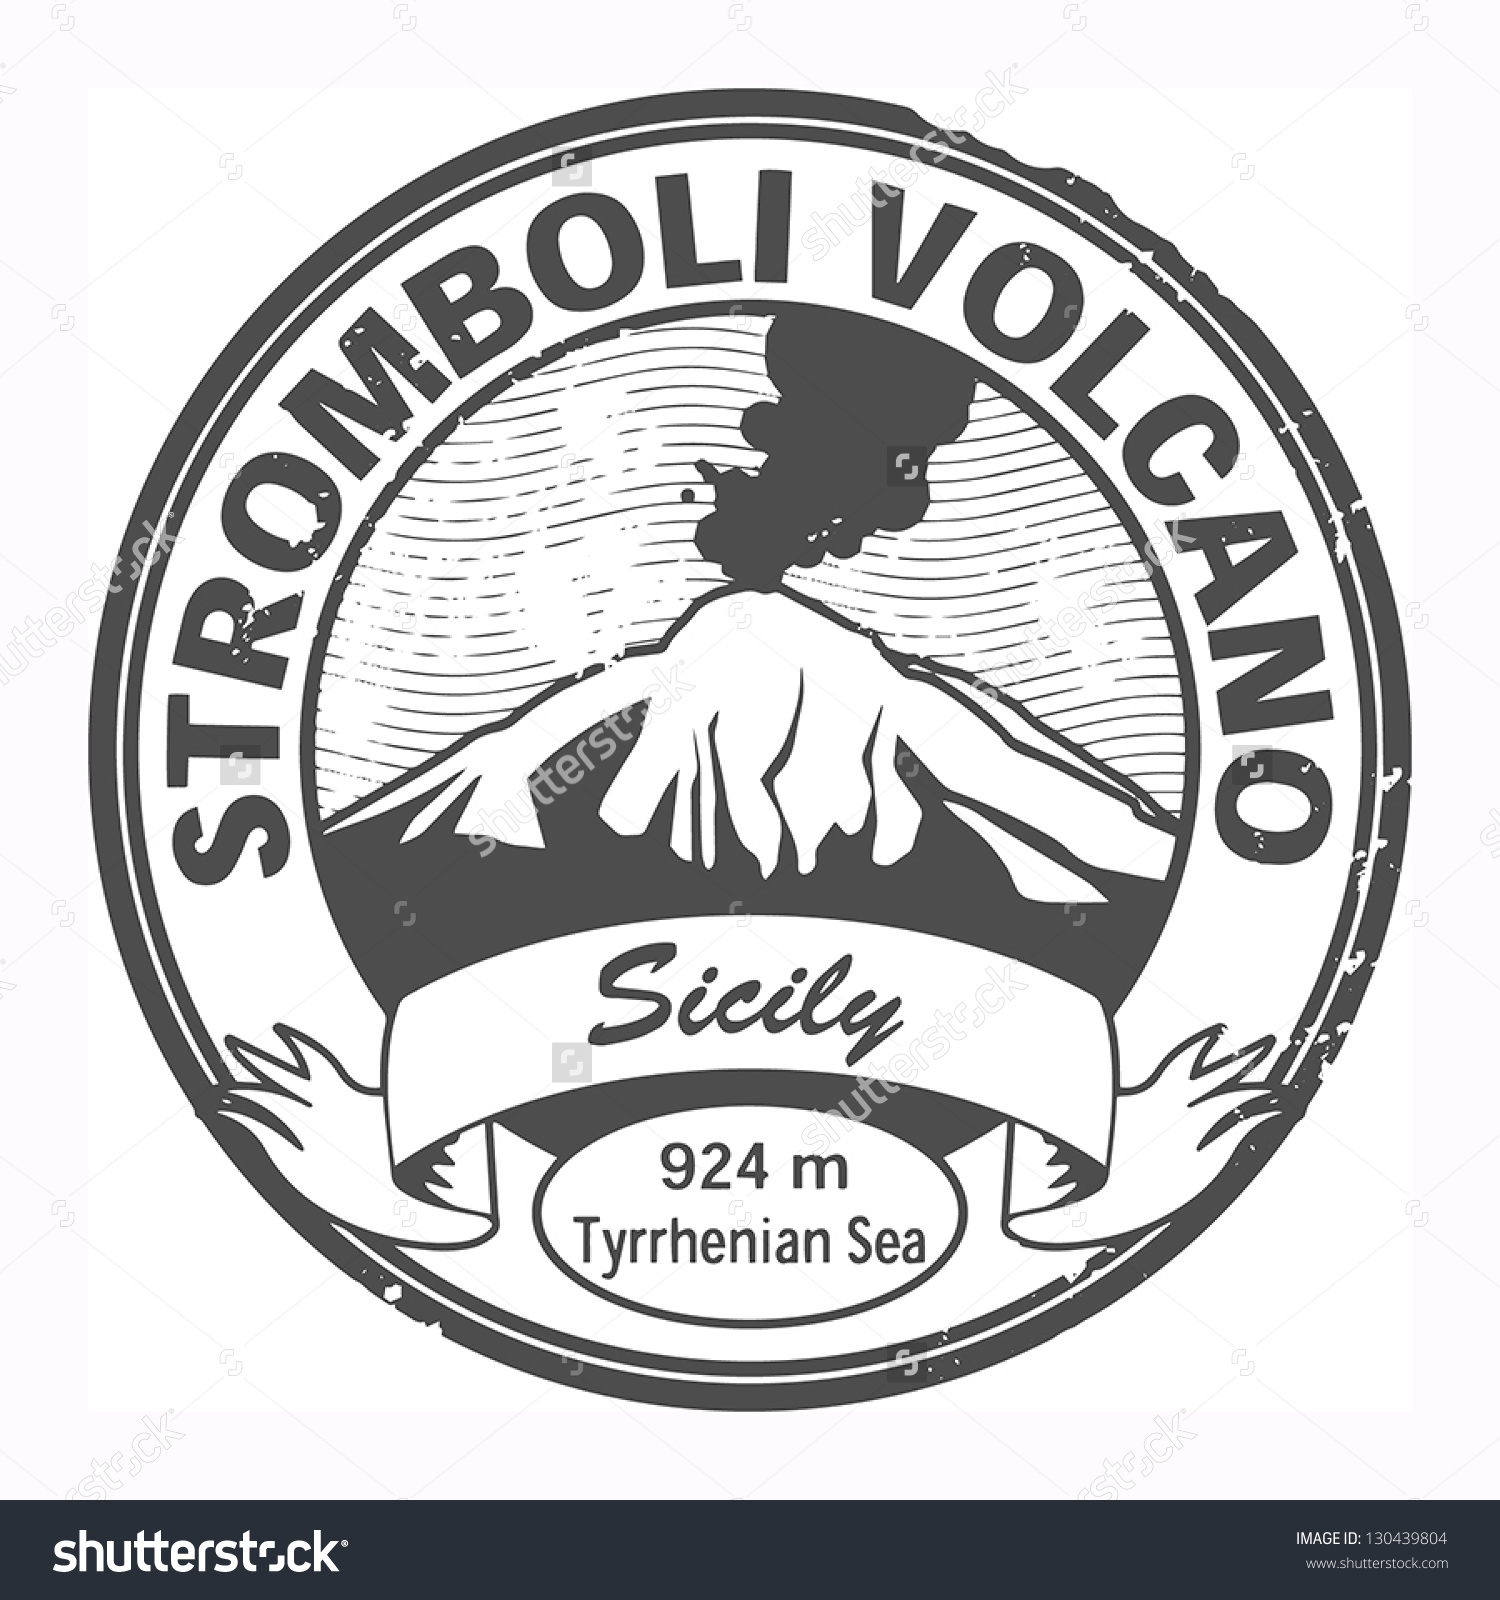 Grunge Black Stamp With Words Stromboli Volcano, Sicily, Vector.